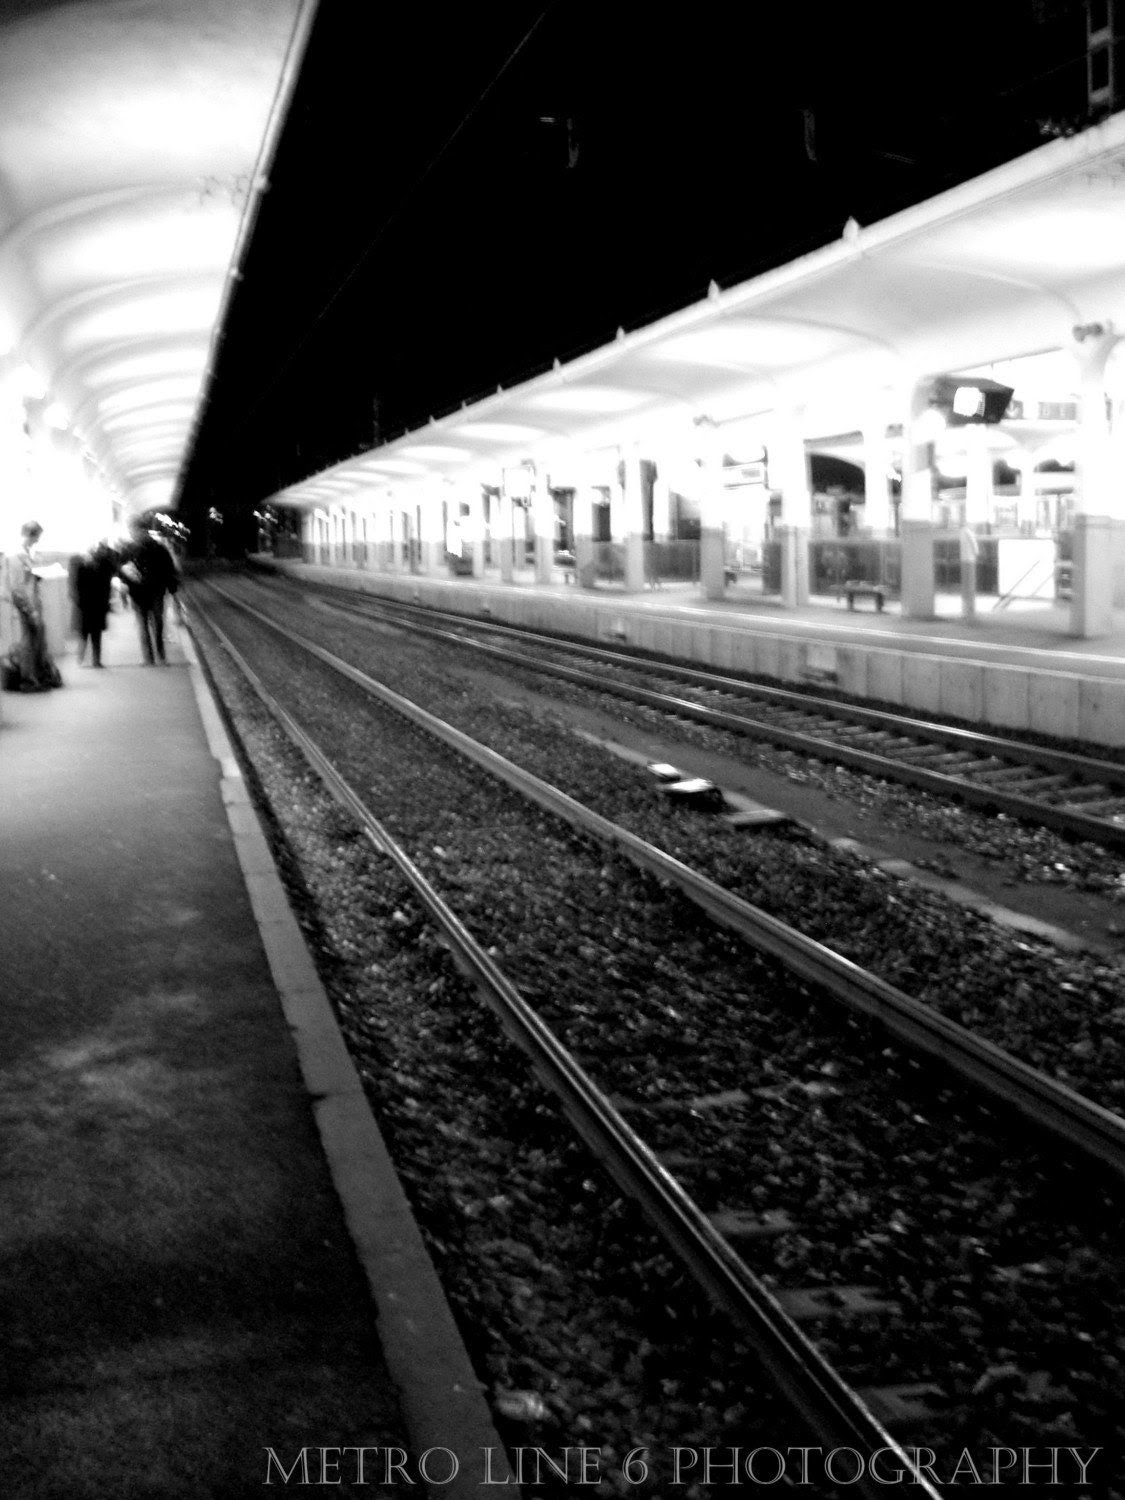 Train station in Saint Brieuc 8x10 Black and White Photography Print